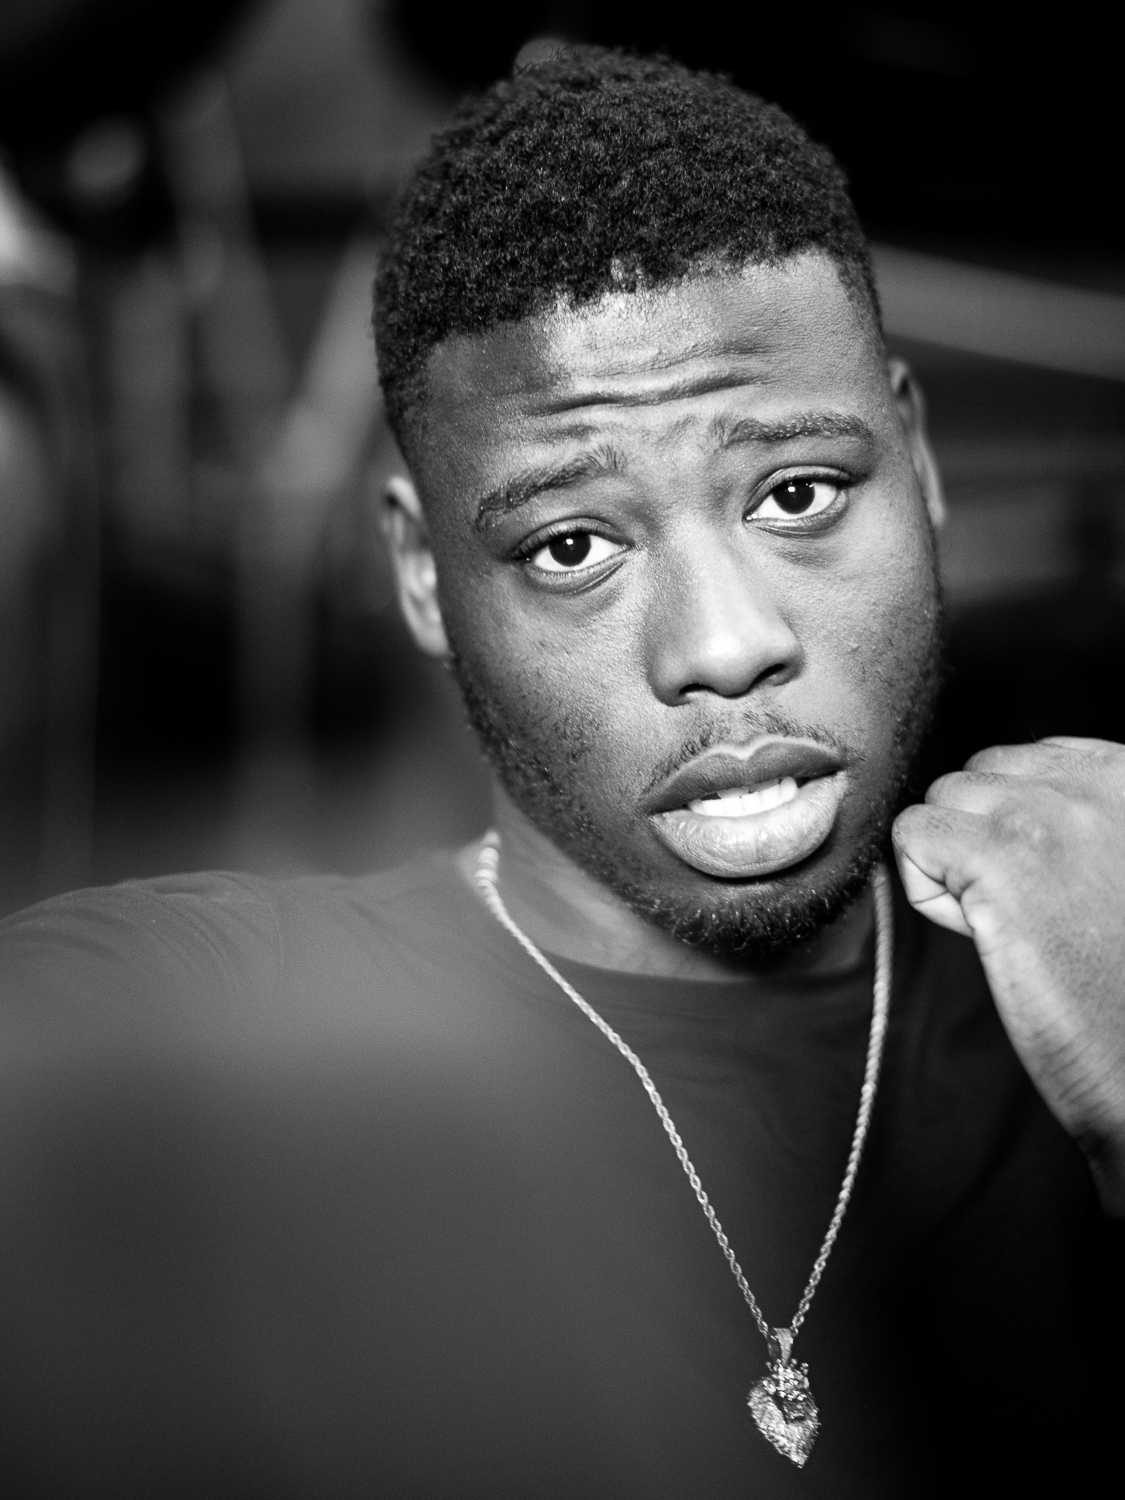 British cruiserweight boxing prospect, Isaac Chamberlain, shot for the Athlete Media Group.